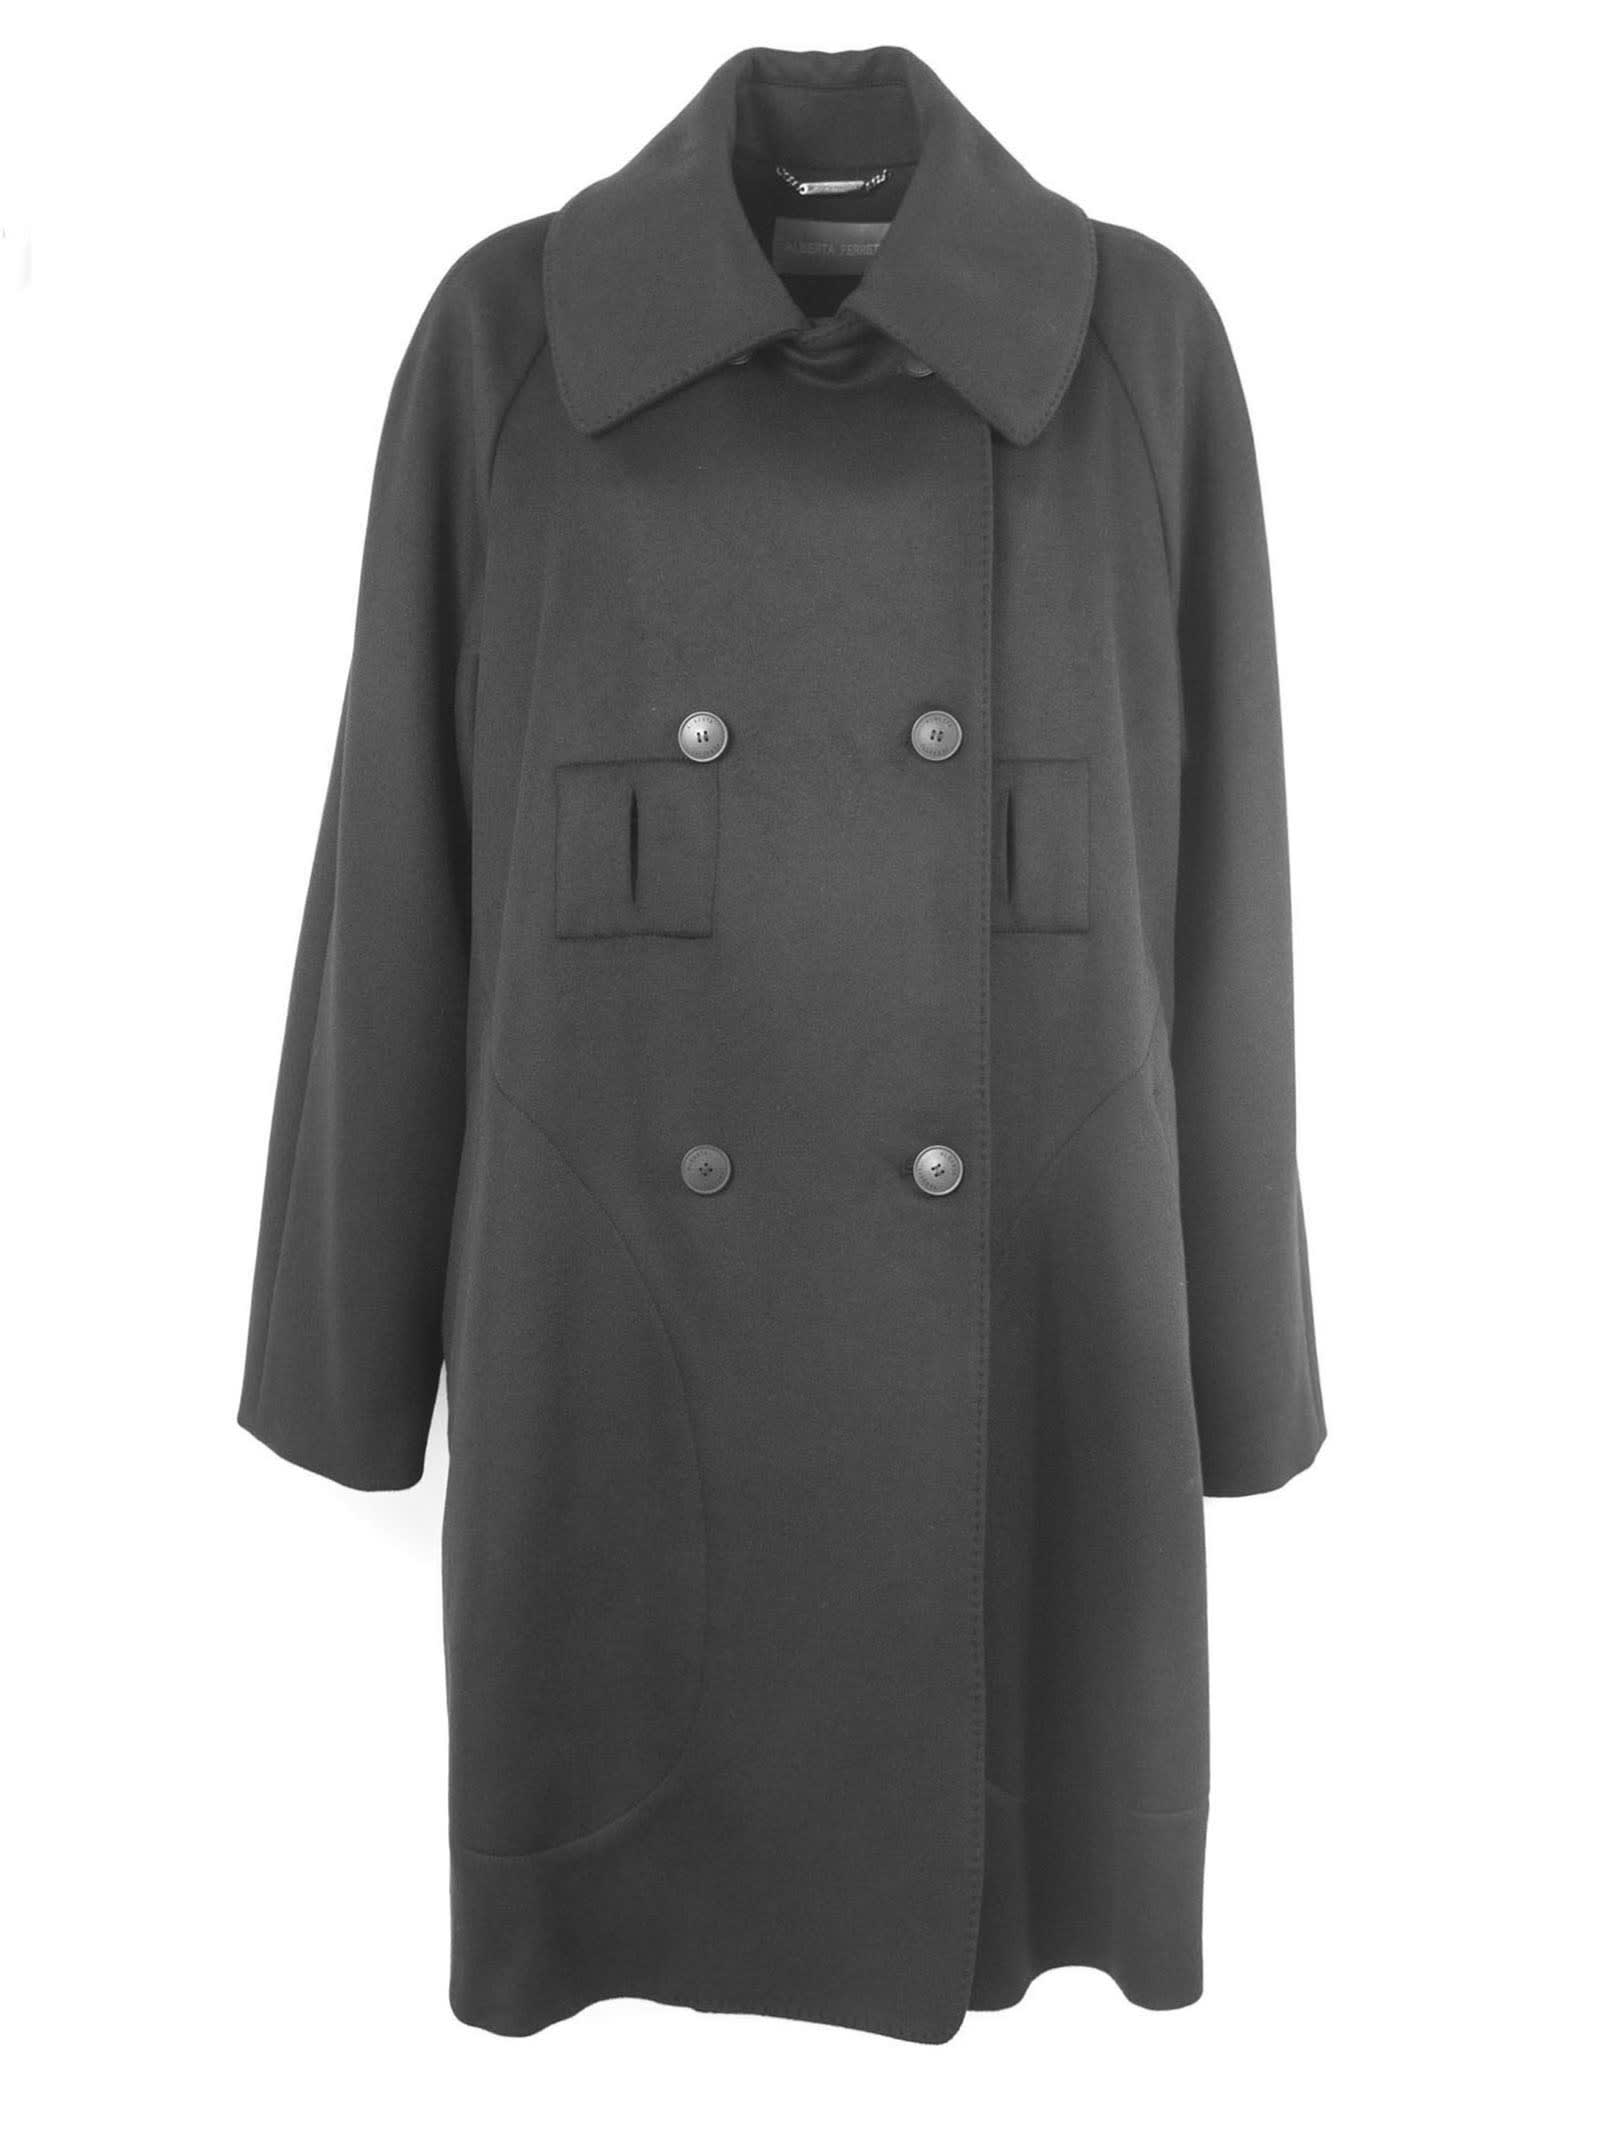 Alberta Ferretti Black Wool Blend Coat